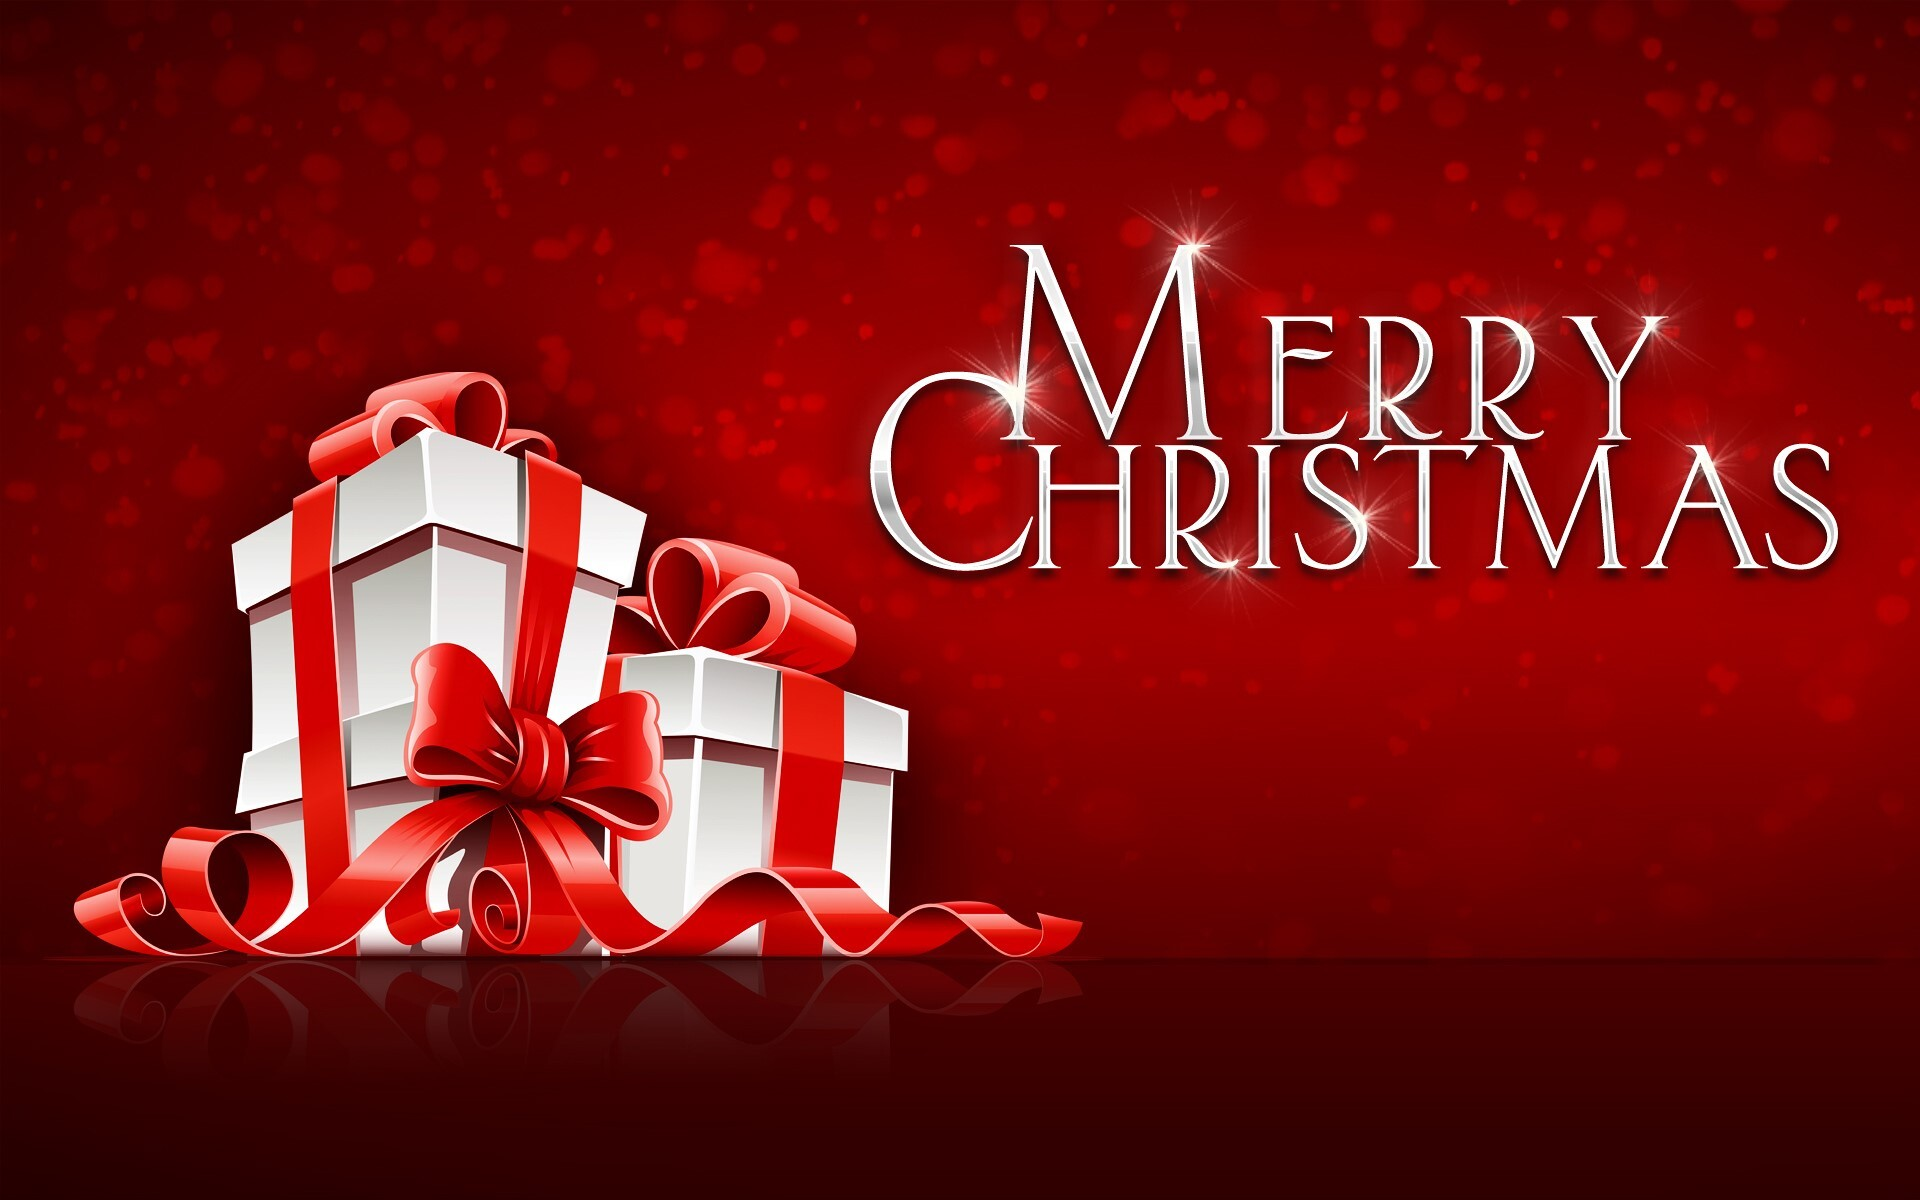 Merry Christmas Gift.Merry Christmas Gift On Festival Red Background Hd